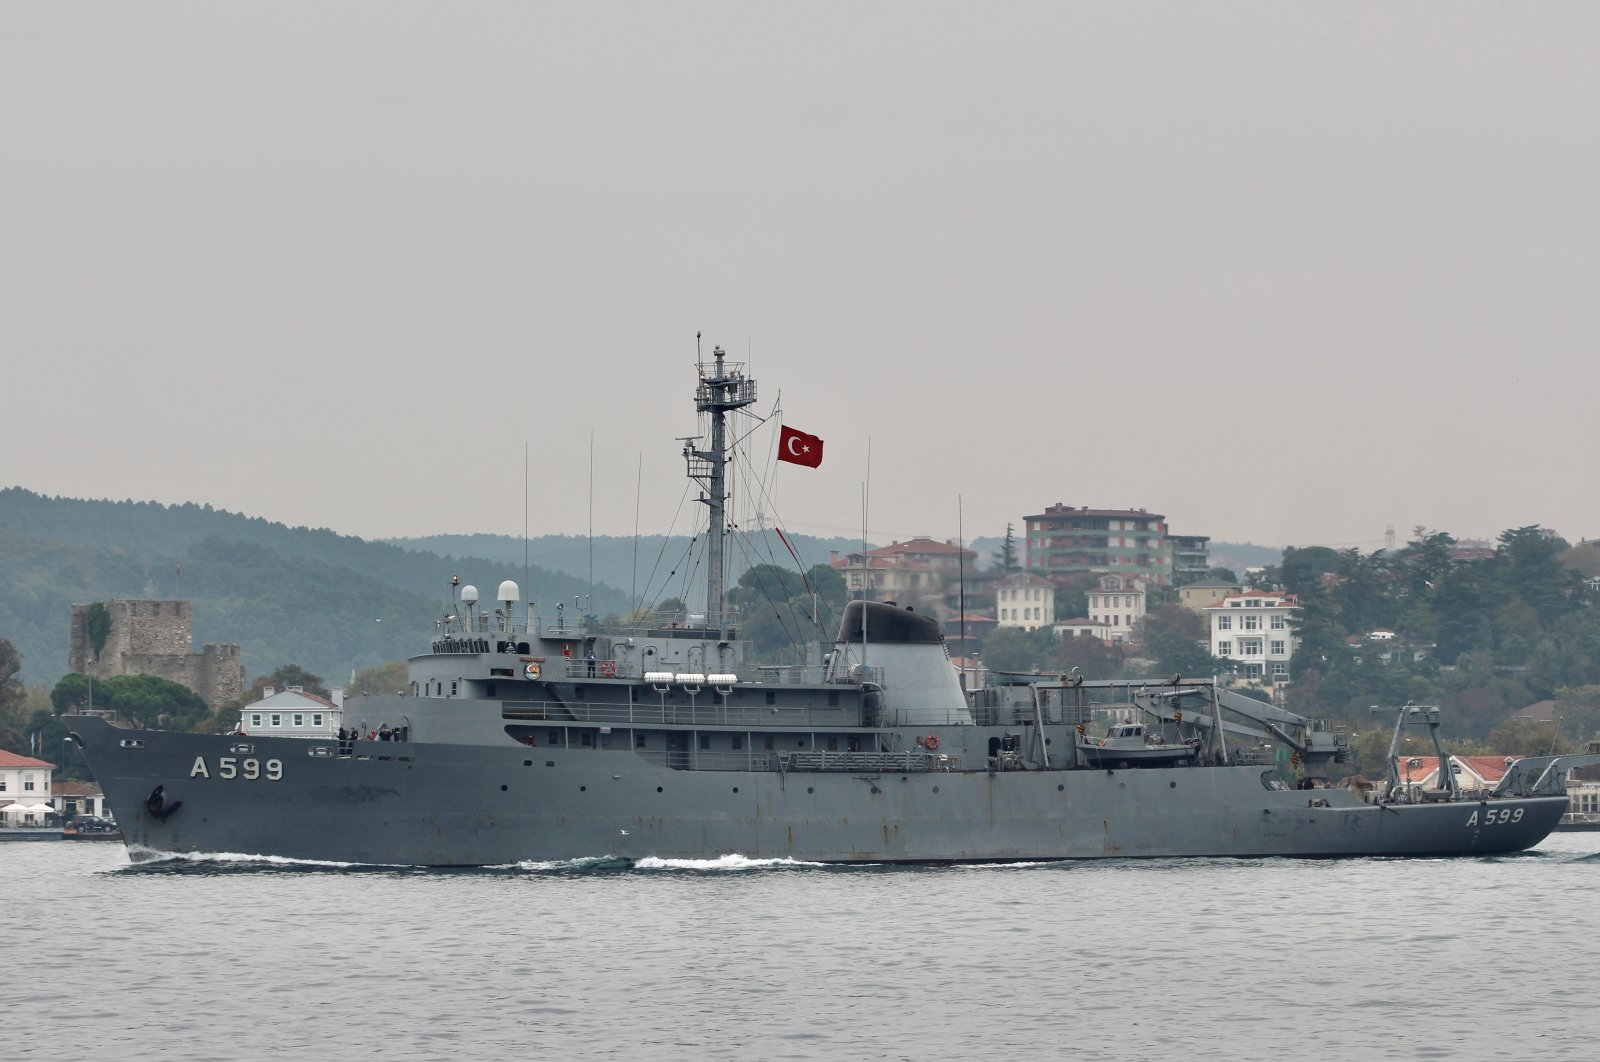 Turkish Navy research vessel TCG Çesme sails in the Bosphorus in Istanbul, Turkey, Oct. 16, 2019. (REUTERS Photo)